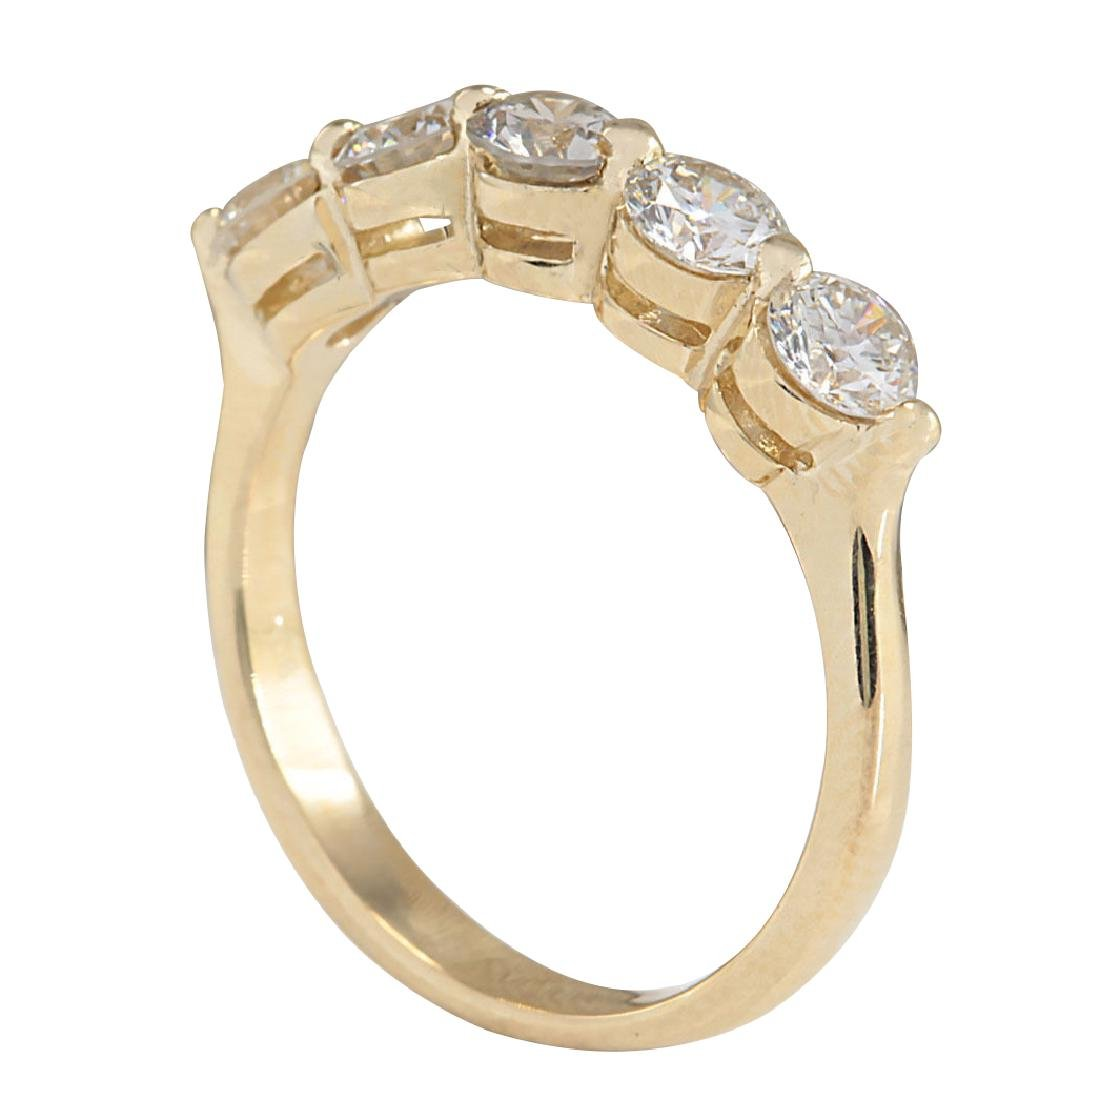 1.00CTW Natural Diamond Ring In 18K Yellow Gold - 3